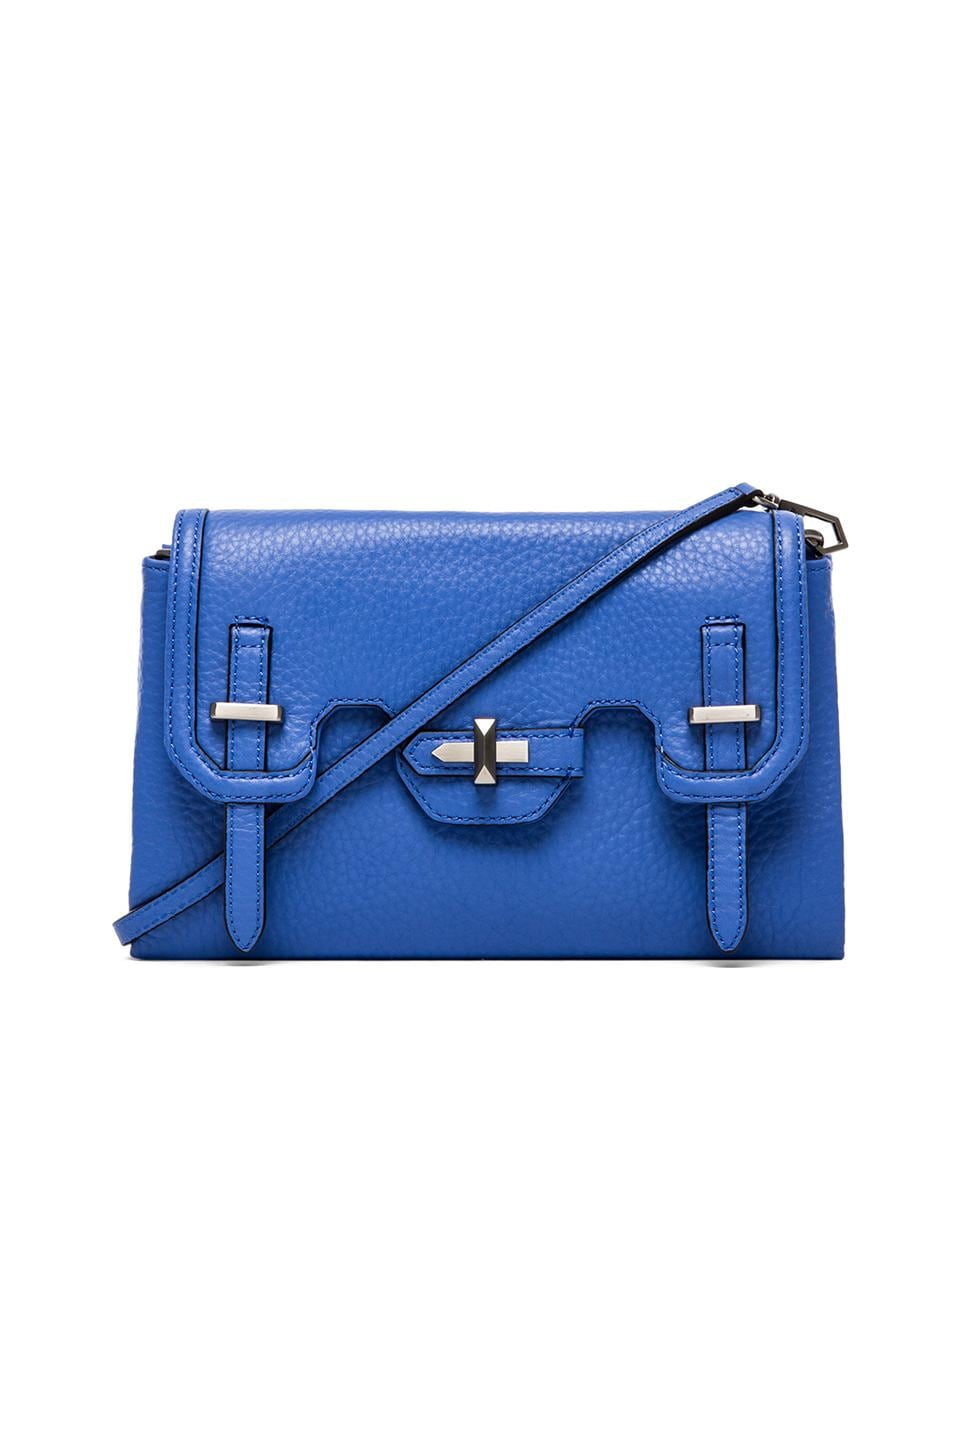 Rebecca Minkoff Mini Jules Clutch in Twilight Sky